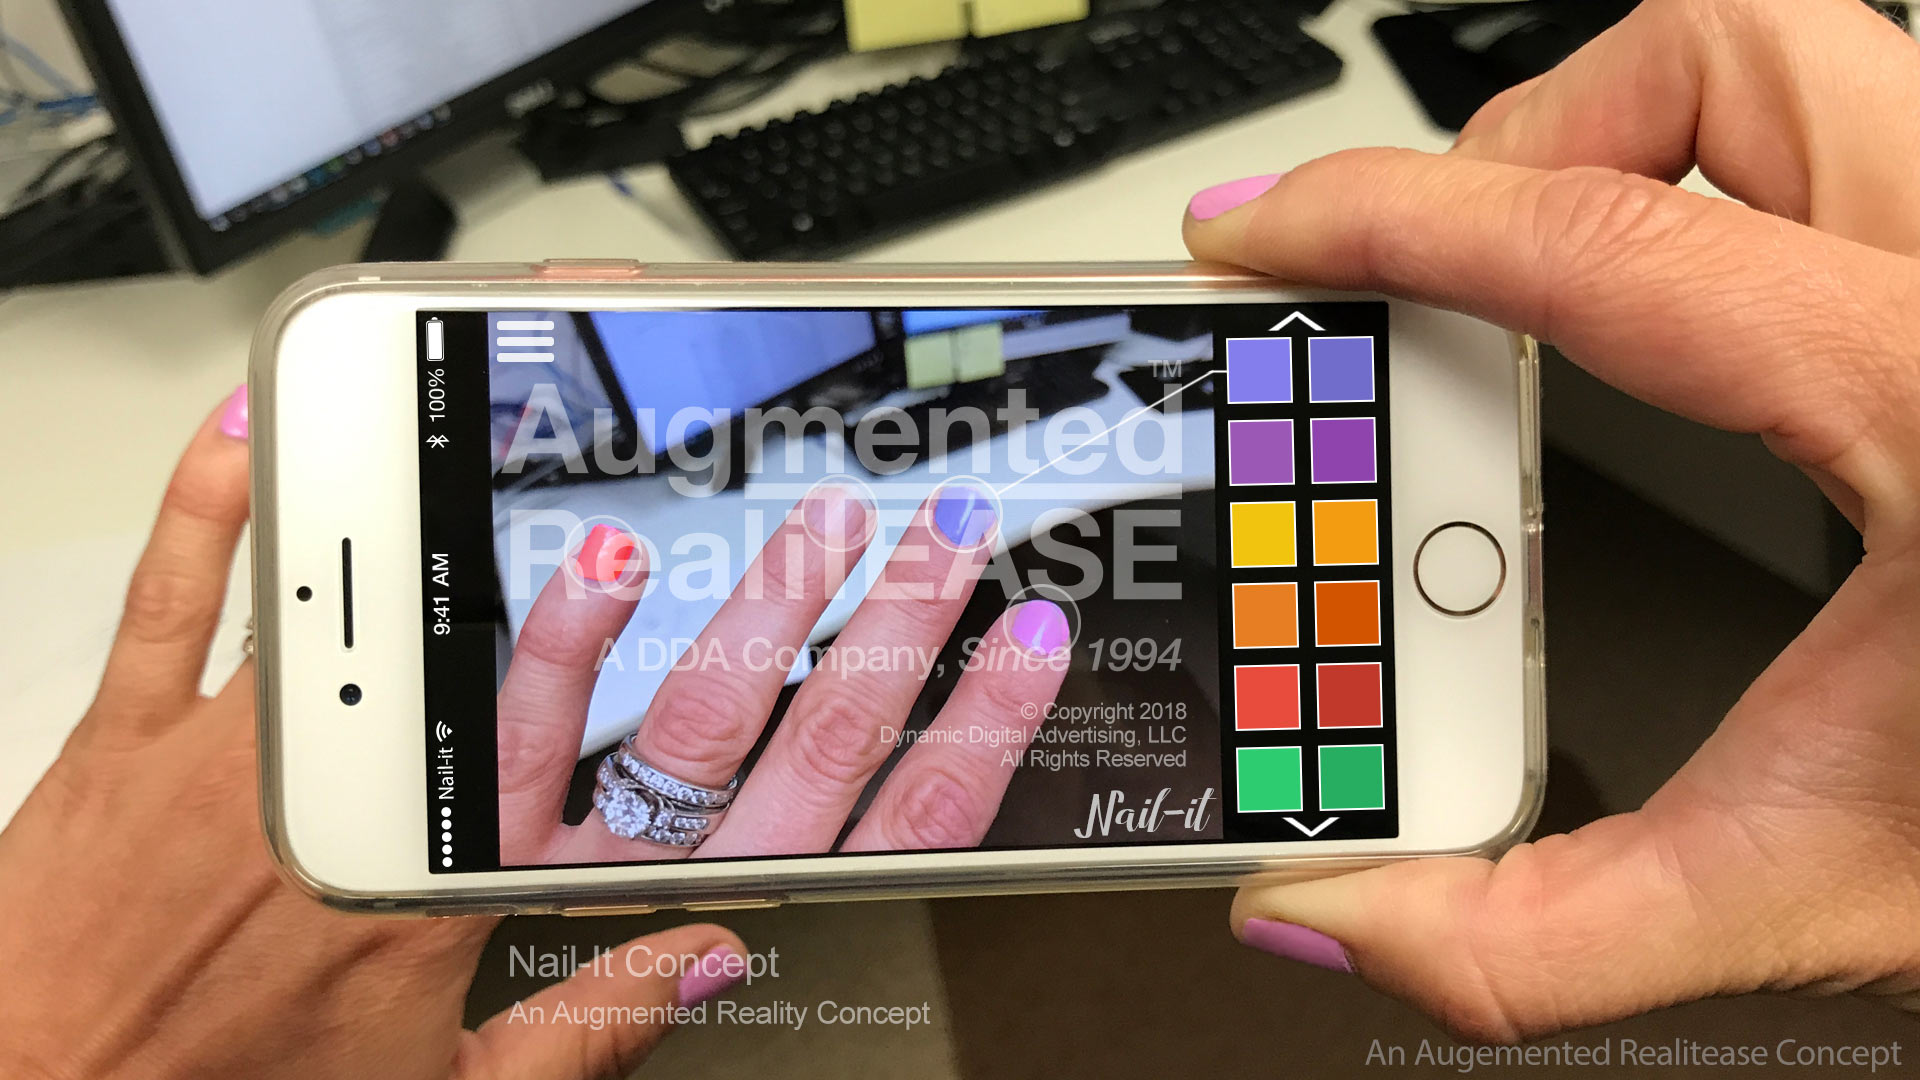 Nail-It Augmented Reality Application